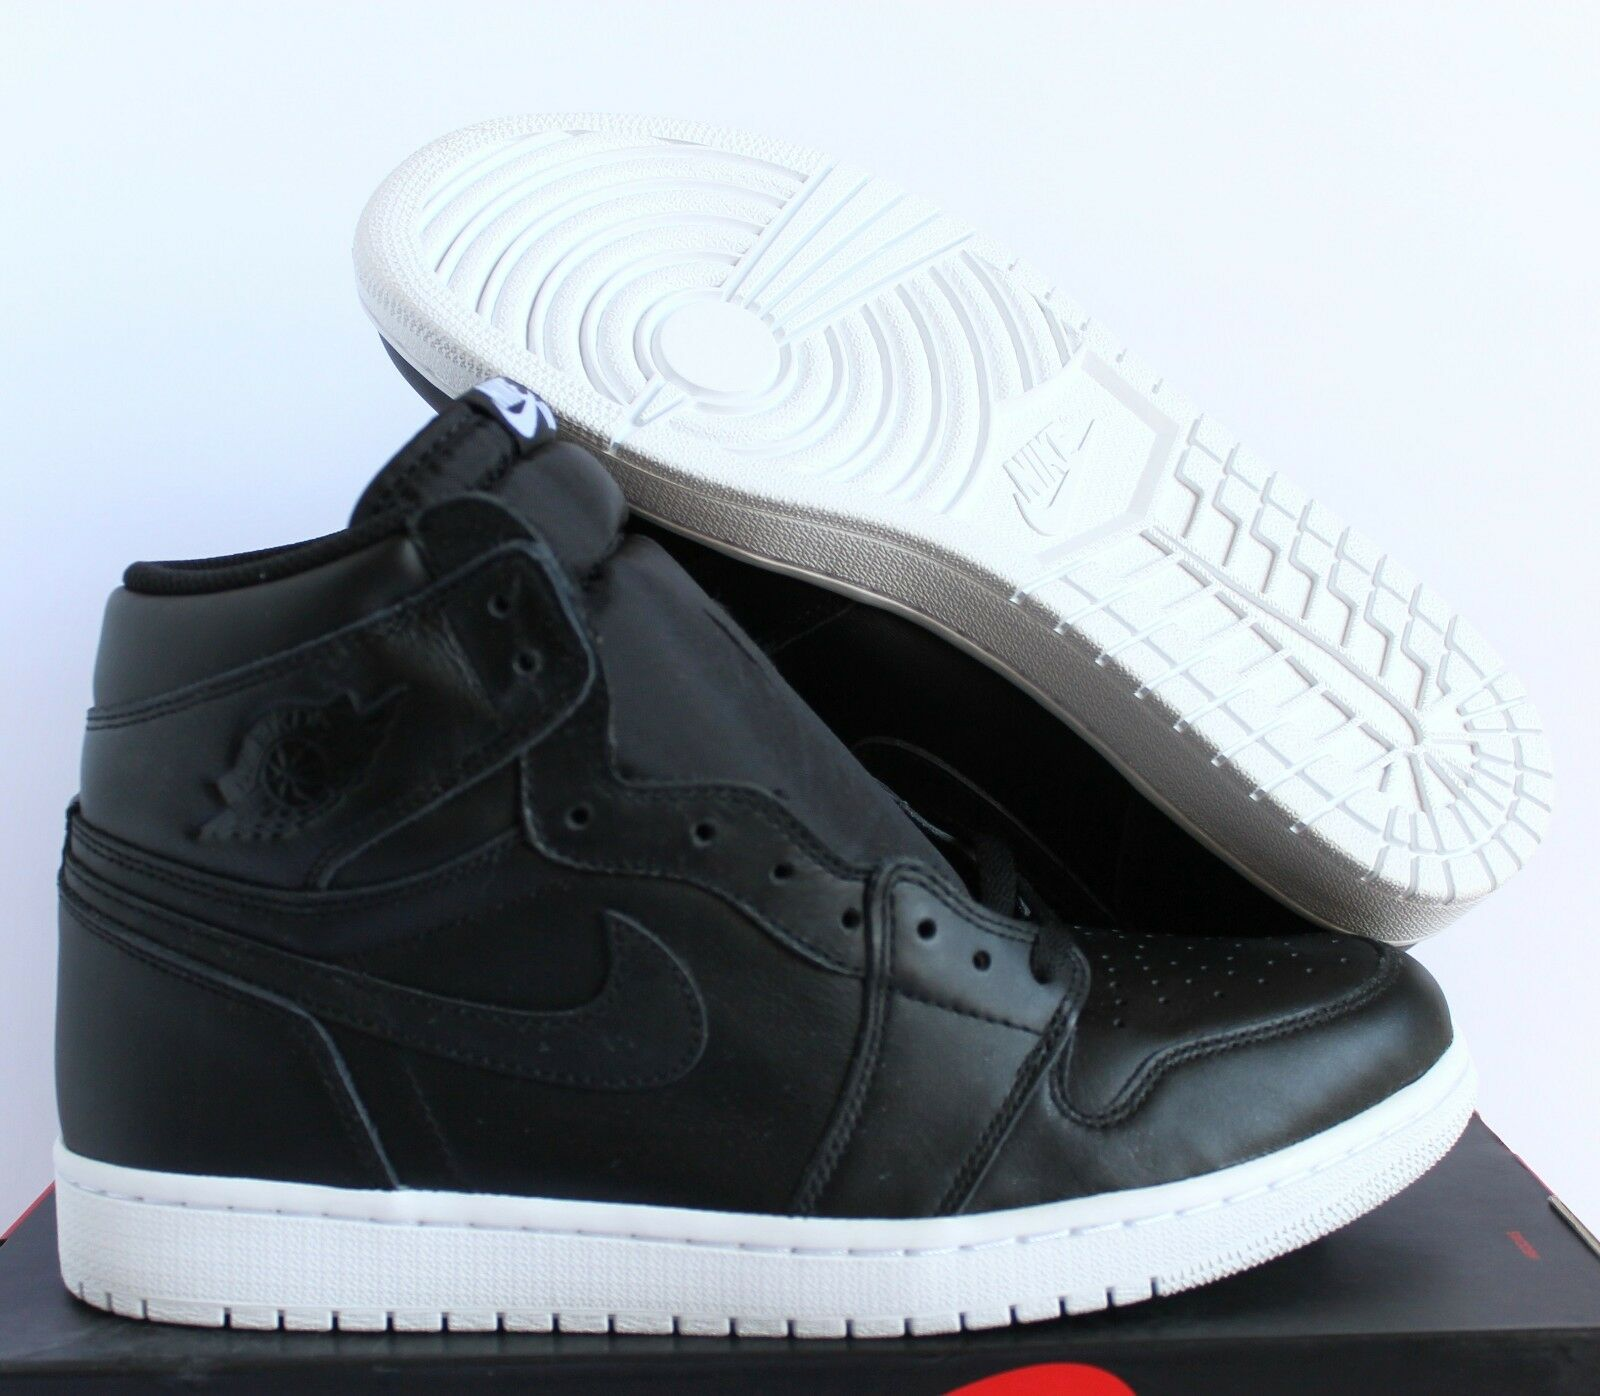 Nike Hommes Air Jordan 1 Retro High OG Cyber Monday Noir -blanc 10